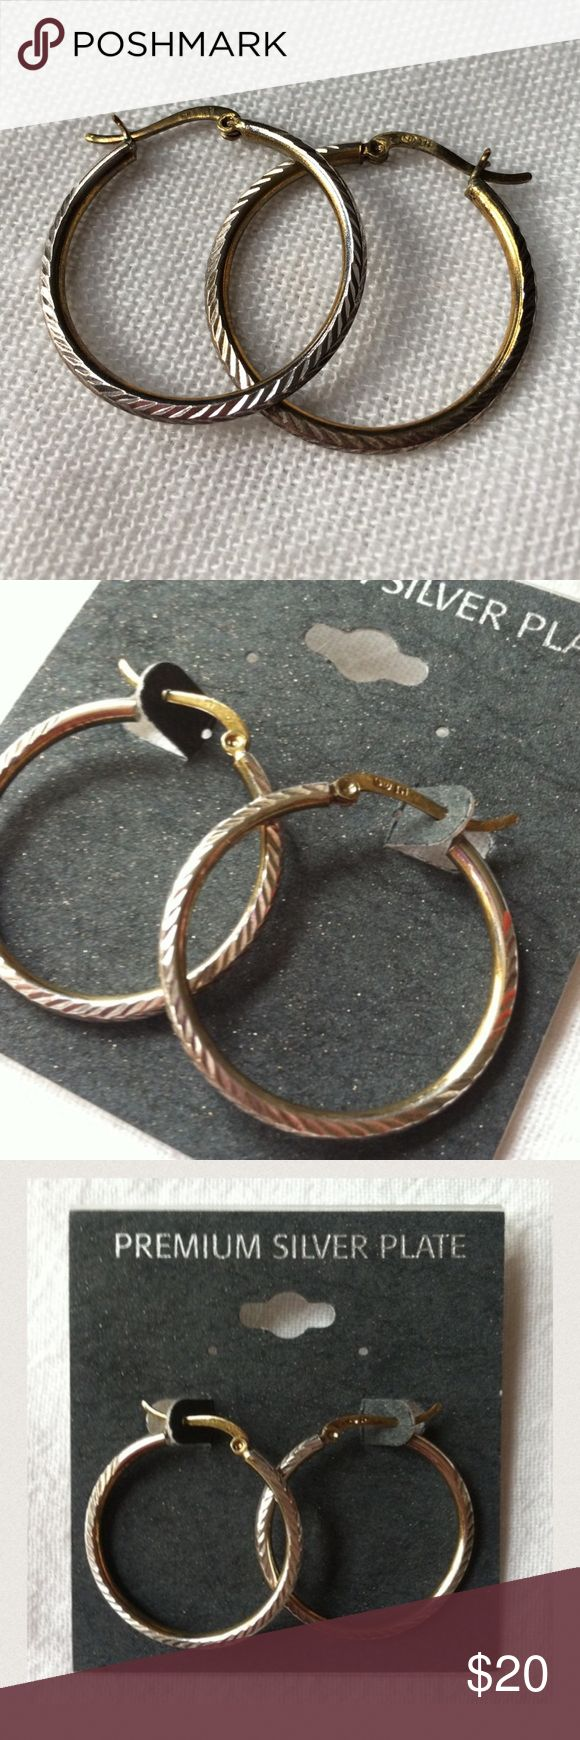 """BRAND NEW Fine Silver Plate Textured Hoop Earrings Brand: Unbranded  Condition: New with tags  MSRP: $40  Material: Premium silver plate  Size: 1.25"""" diameter  Description:  Silver plate over some sort of gold-colored metal. (The gold peeks through the silver in some spots intentionally).  📦Bundle and save💰5%! ❌Price is firm unless bundled❌ unbranded Jewelry Earrings"""